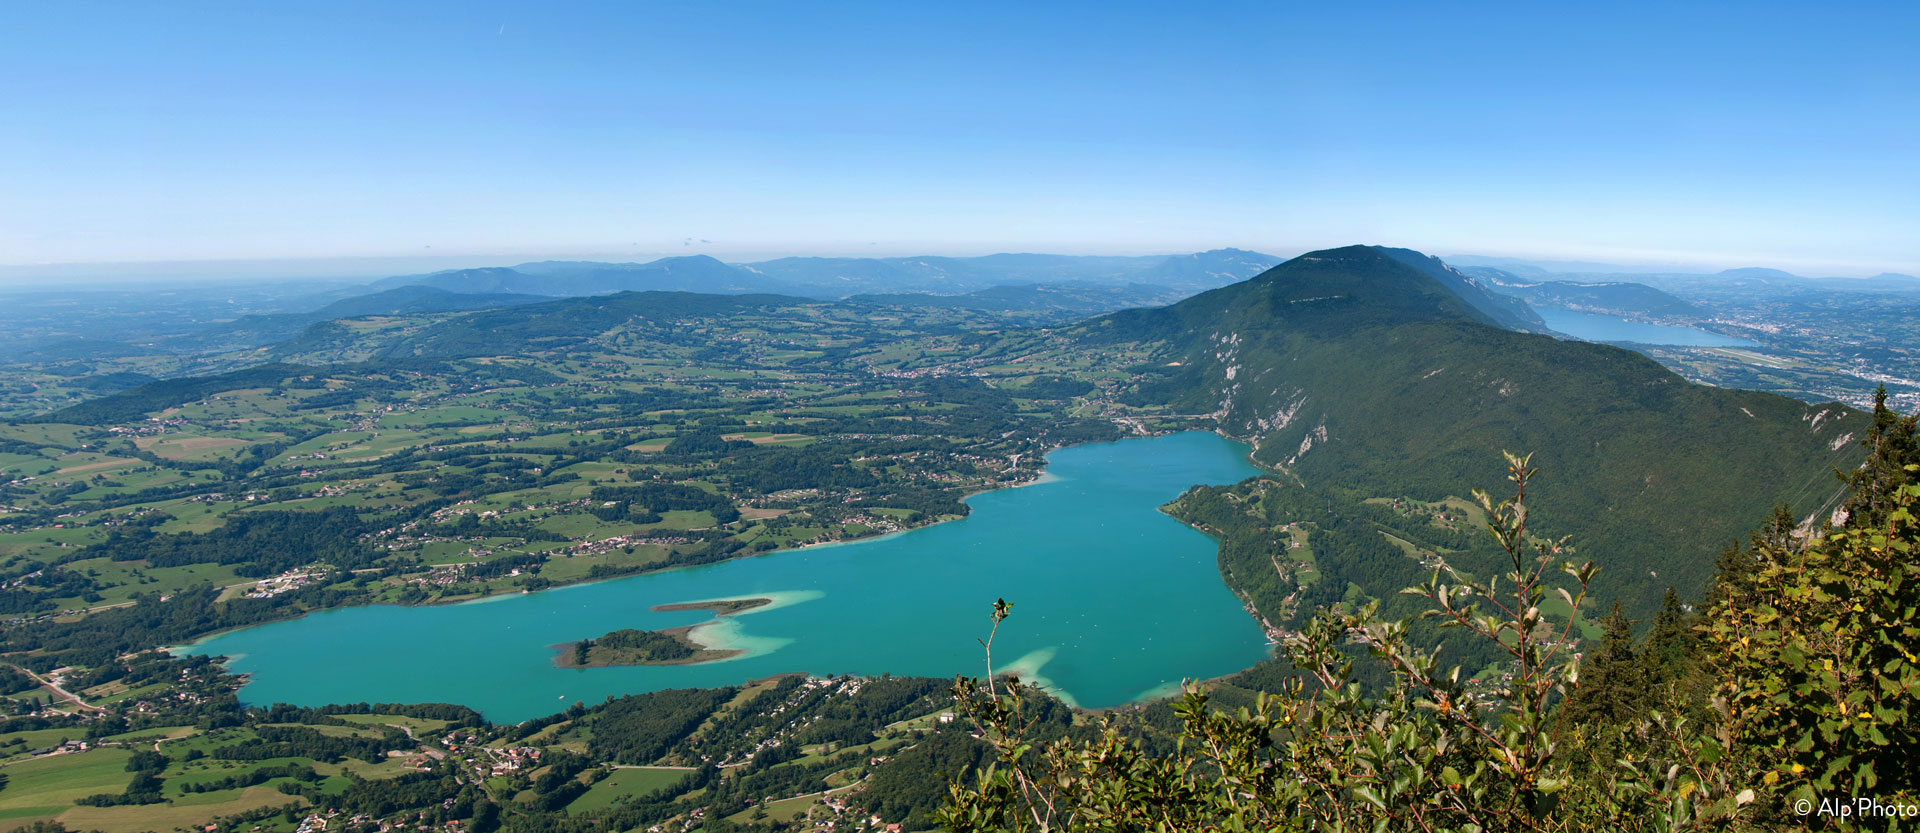 Lac d'Aiguebelette holiday rentals